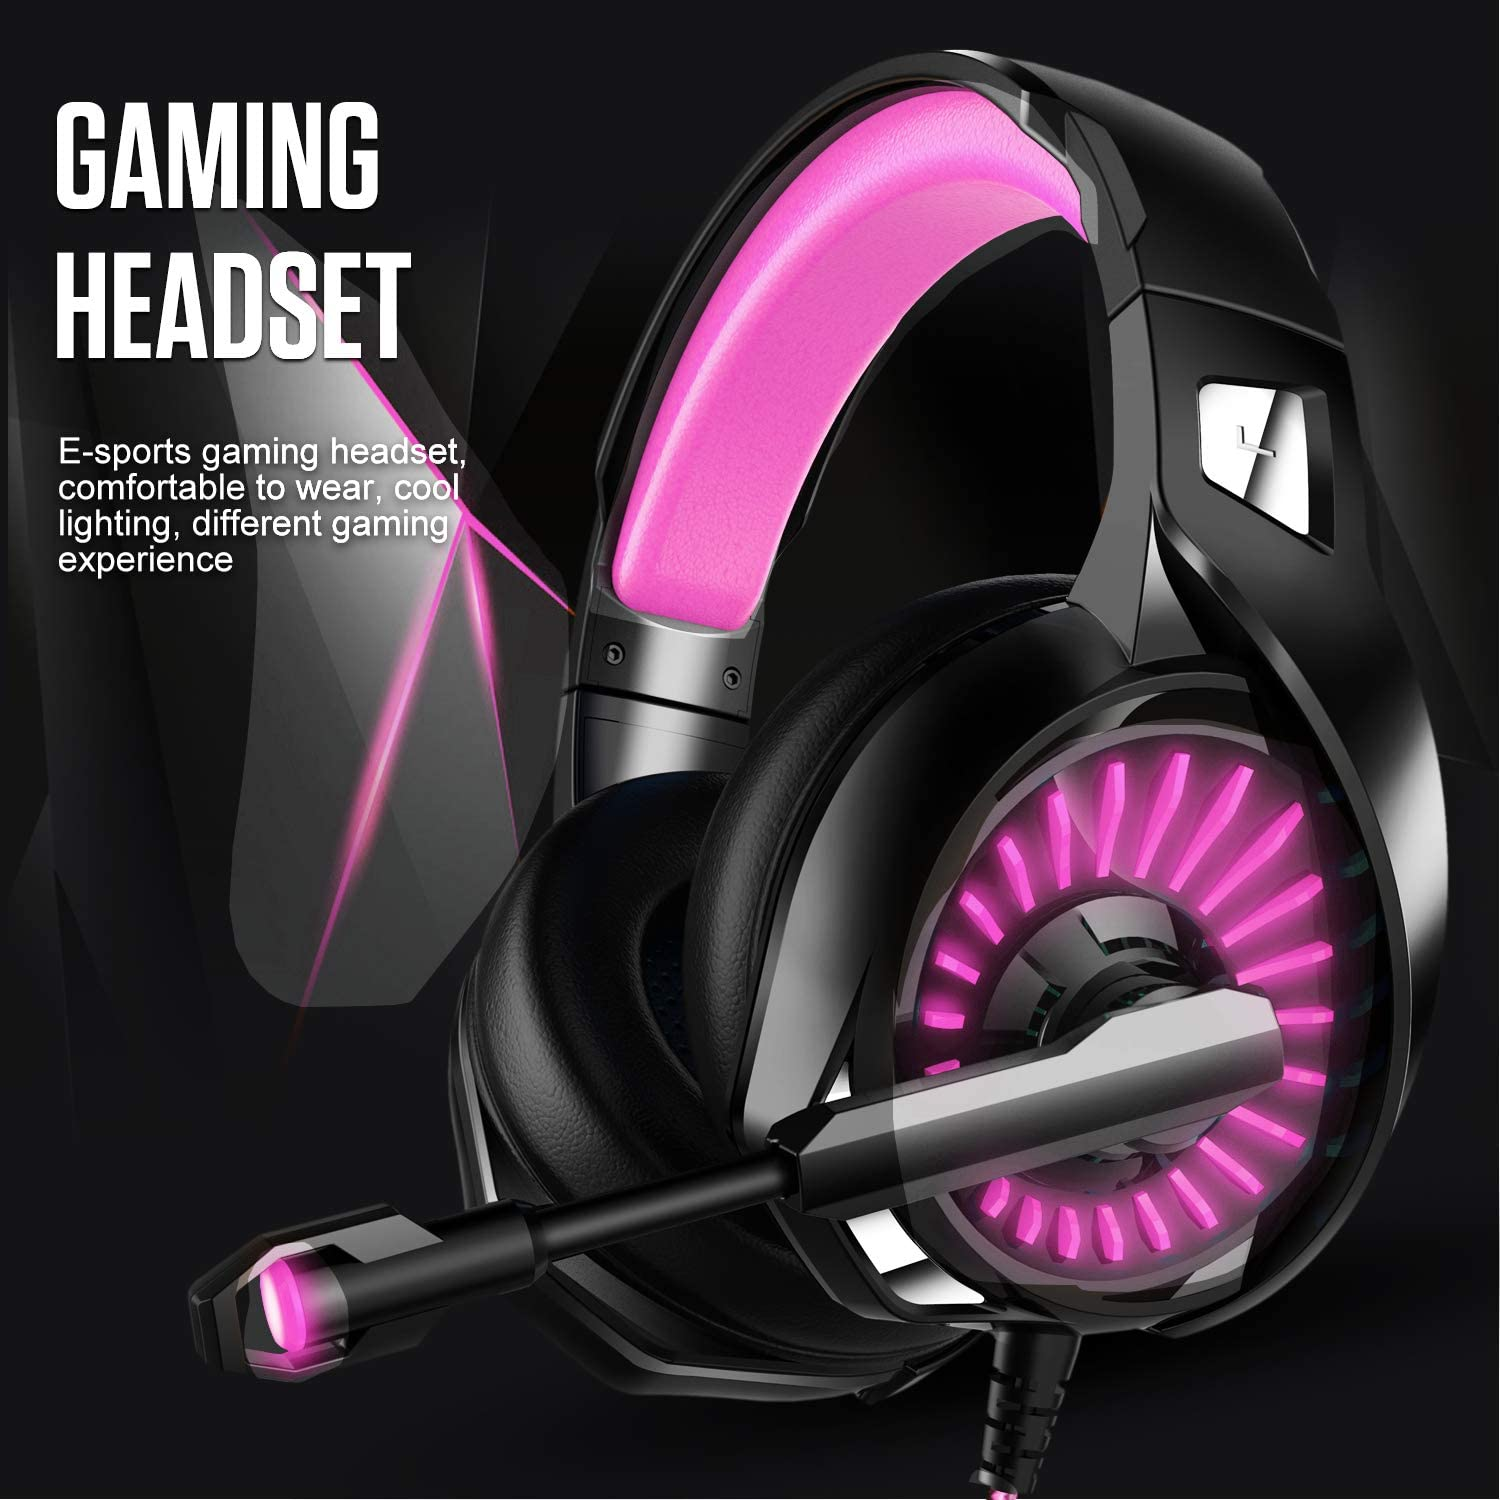 Gaming Headset,MMUSC Stereo Headphones for Laptop,Tablet,PS4 Noise Cancelling Over Ear Headset with Mic Bass Surround PC Xbox One Controller LED Light